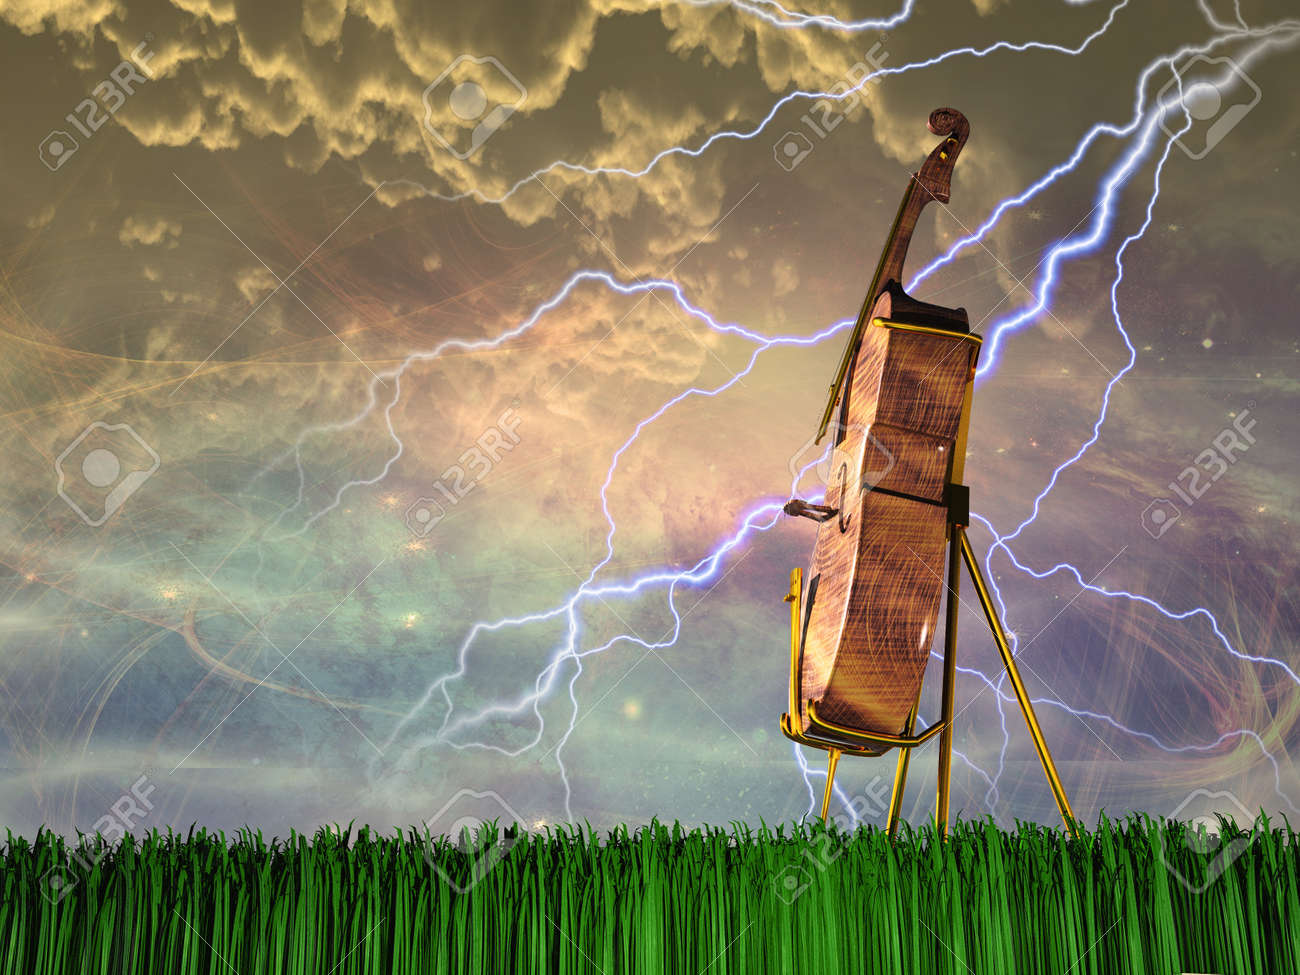 Cello in dream like landscape Stock Photo - 17183361